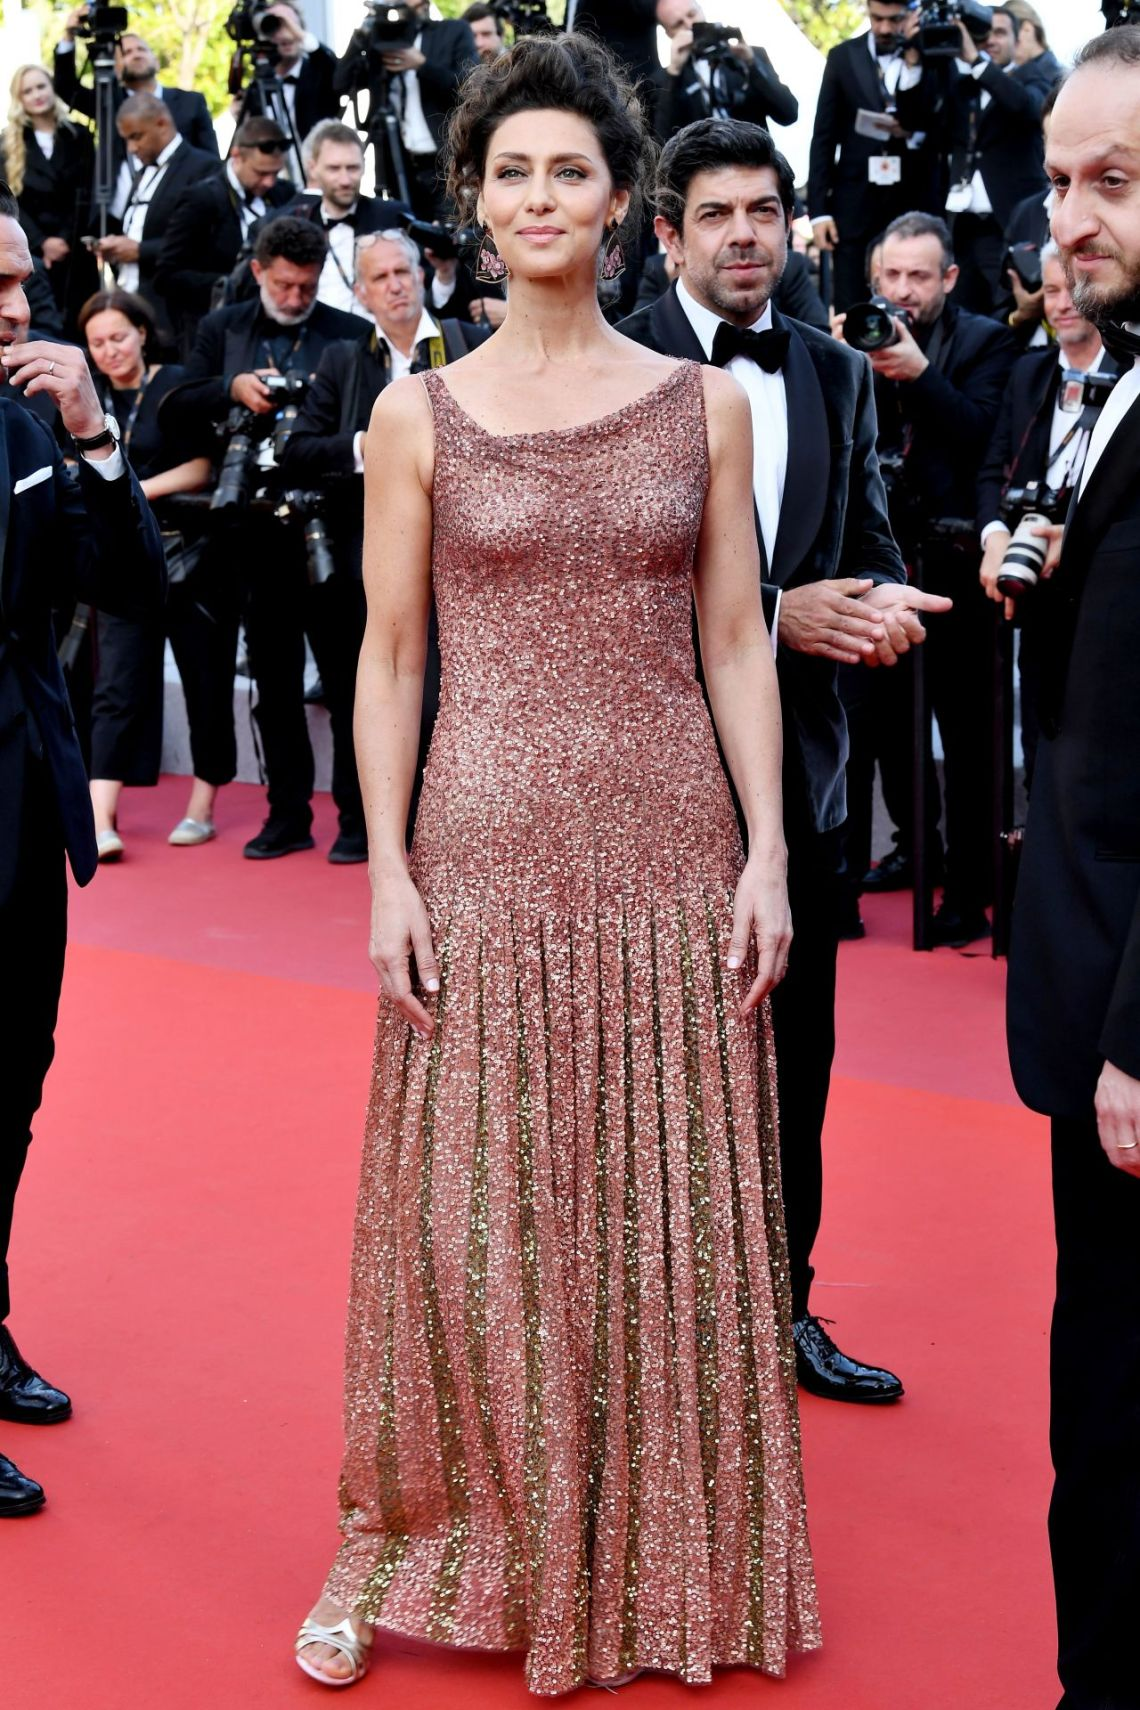 maria-fernanda-candido-the-traitor-red-carpet-at-cannes-film-festival-0